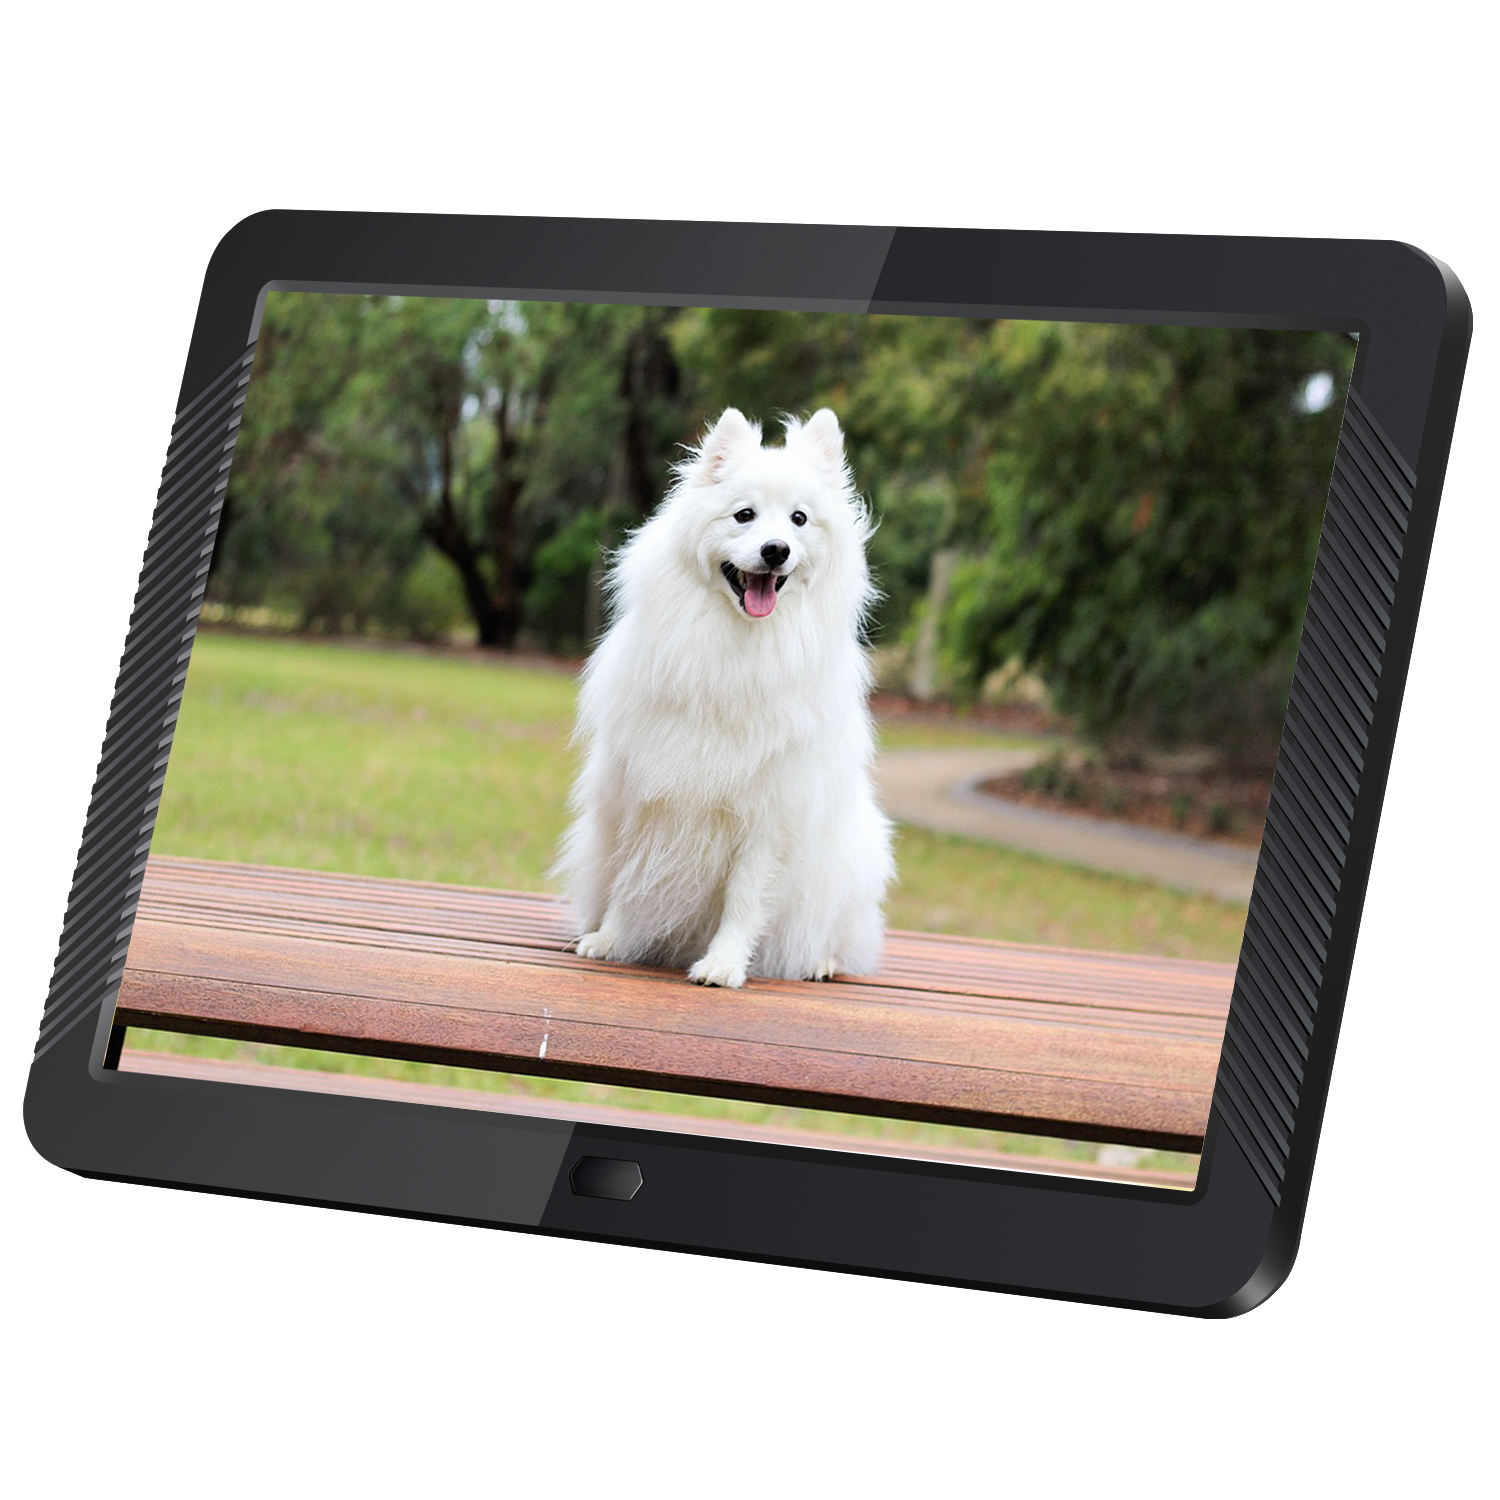 Digital Photo Frame 8 Inch IPS Display 1280*800 Digital Photo & HD Video Frame model name P800